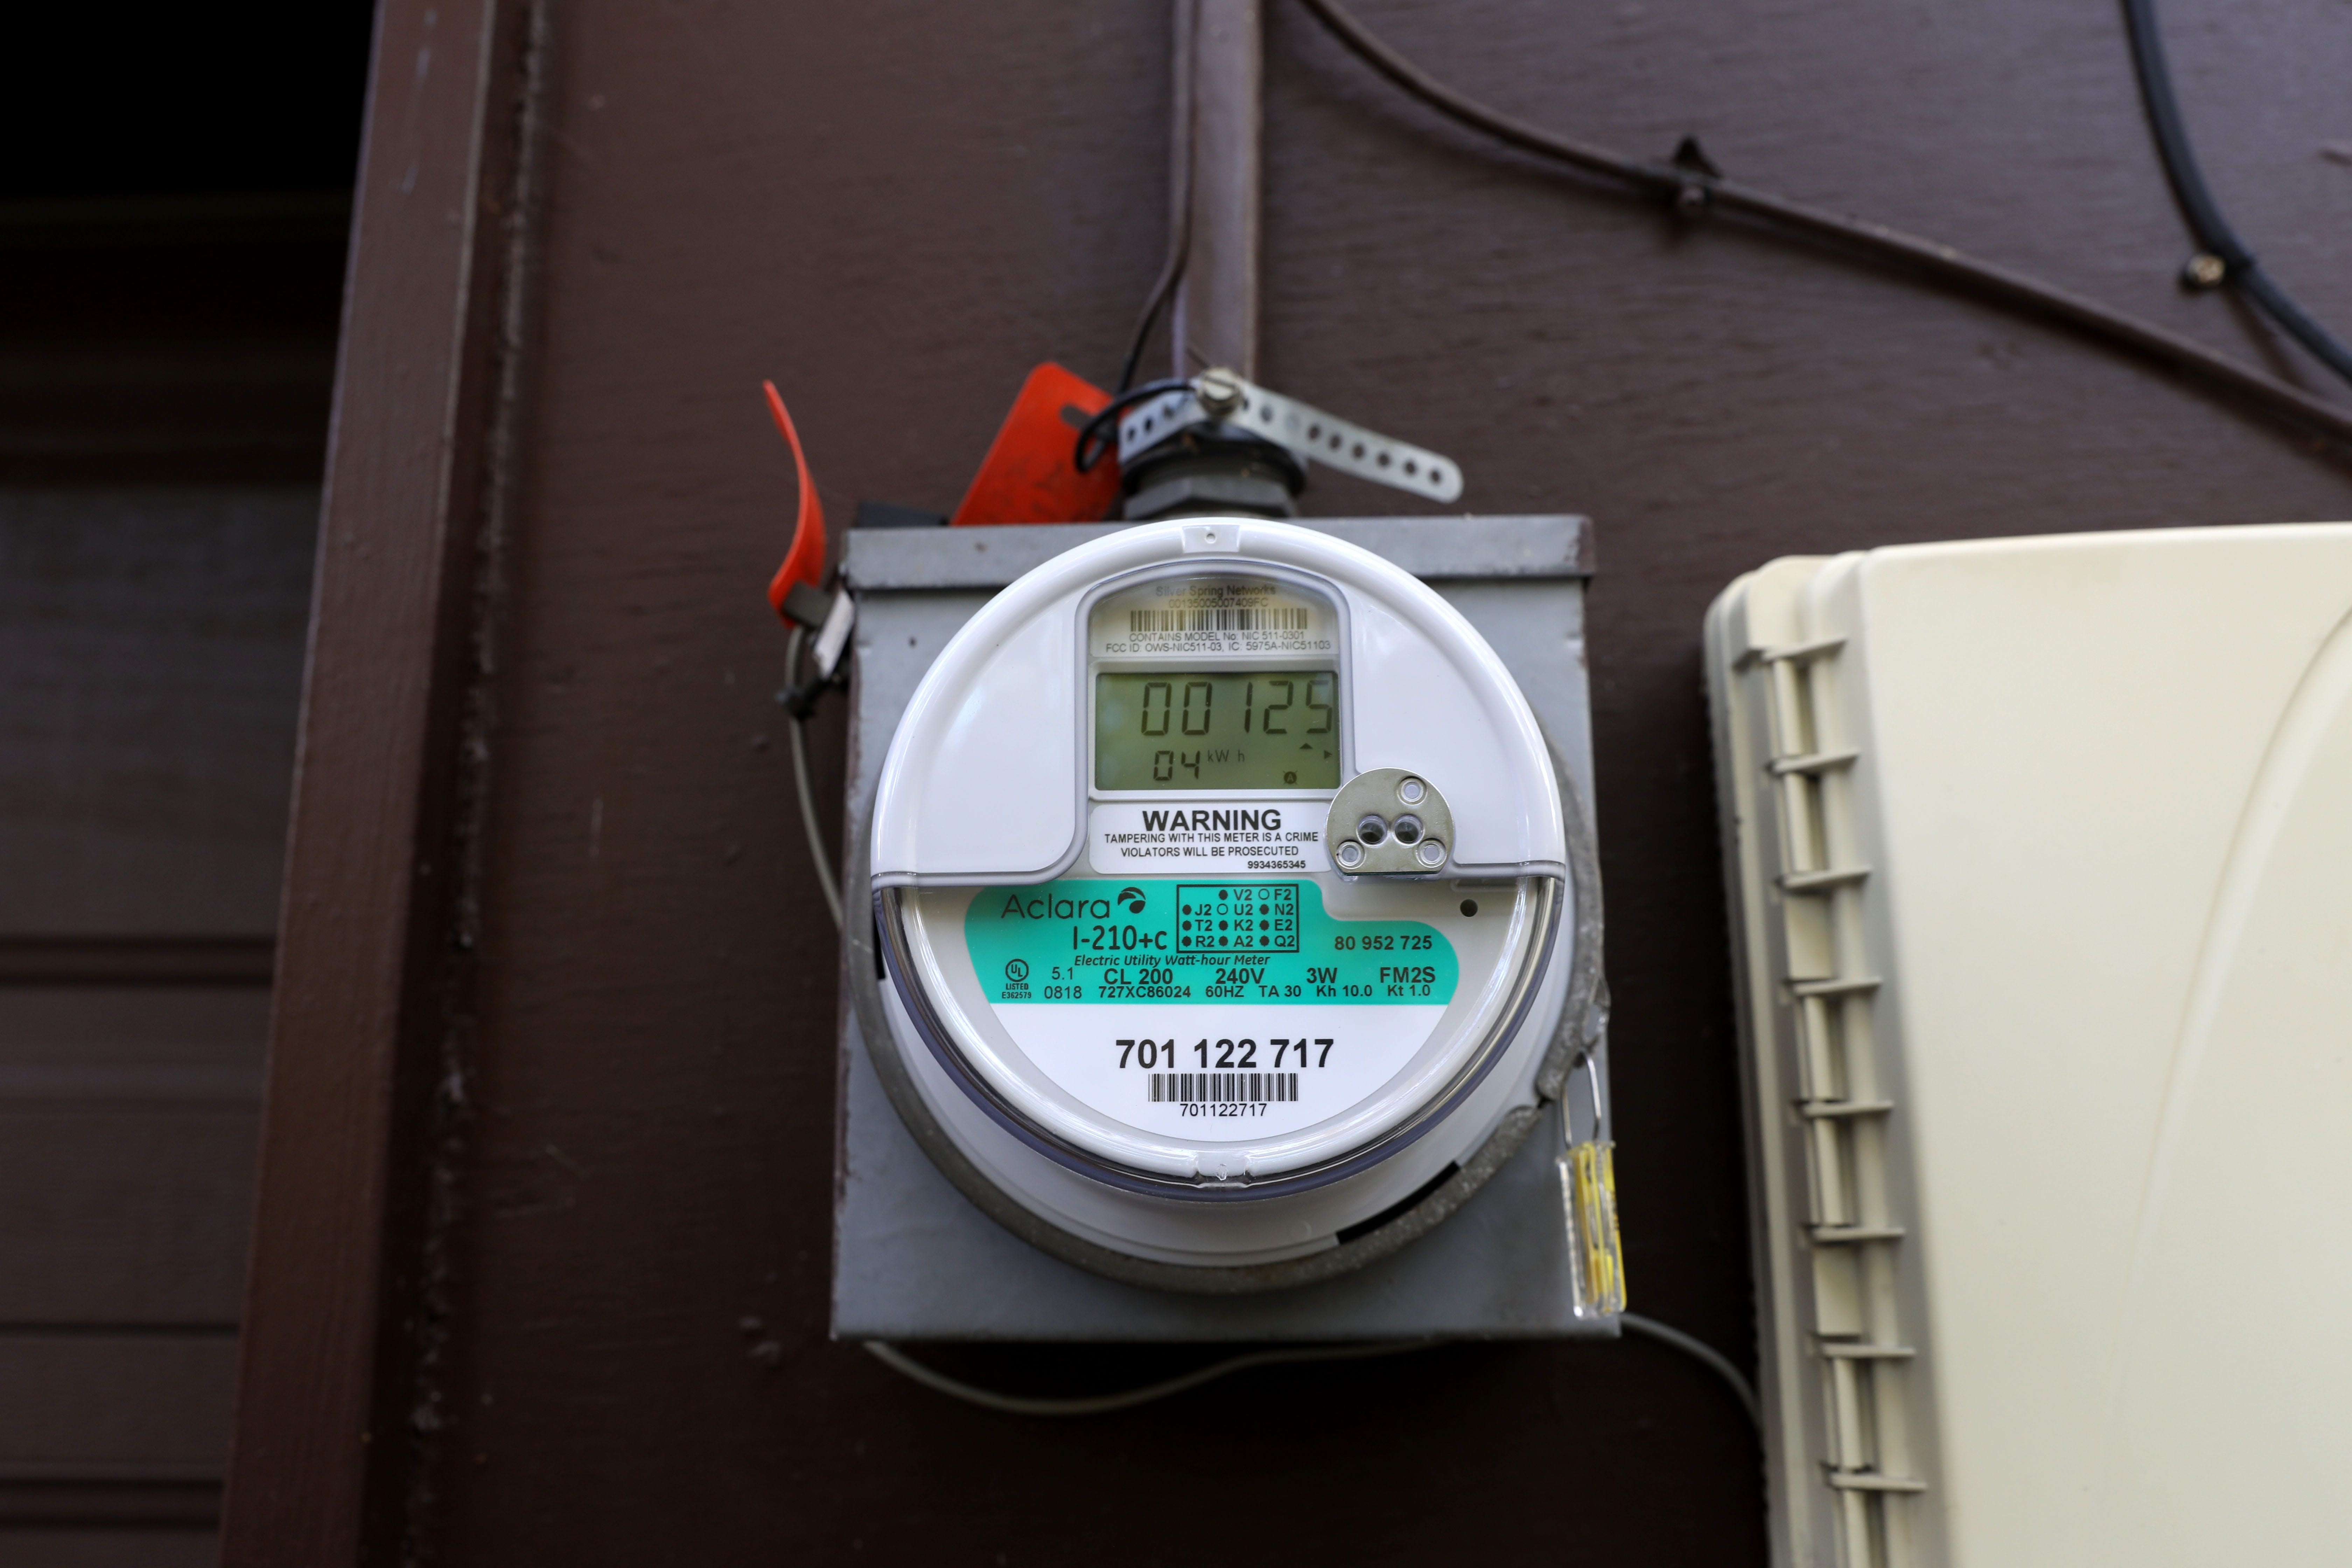 c356e792 e9b1 4b35 852f ae70dad9884a ts110118smartmeter04?quality=10 smart meters pose privacy worries for homeowners